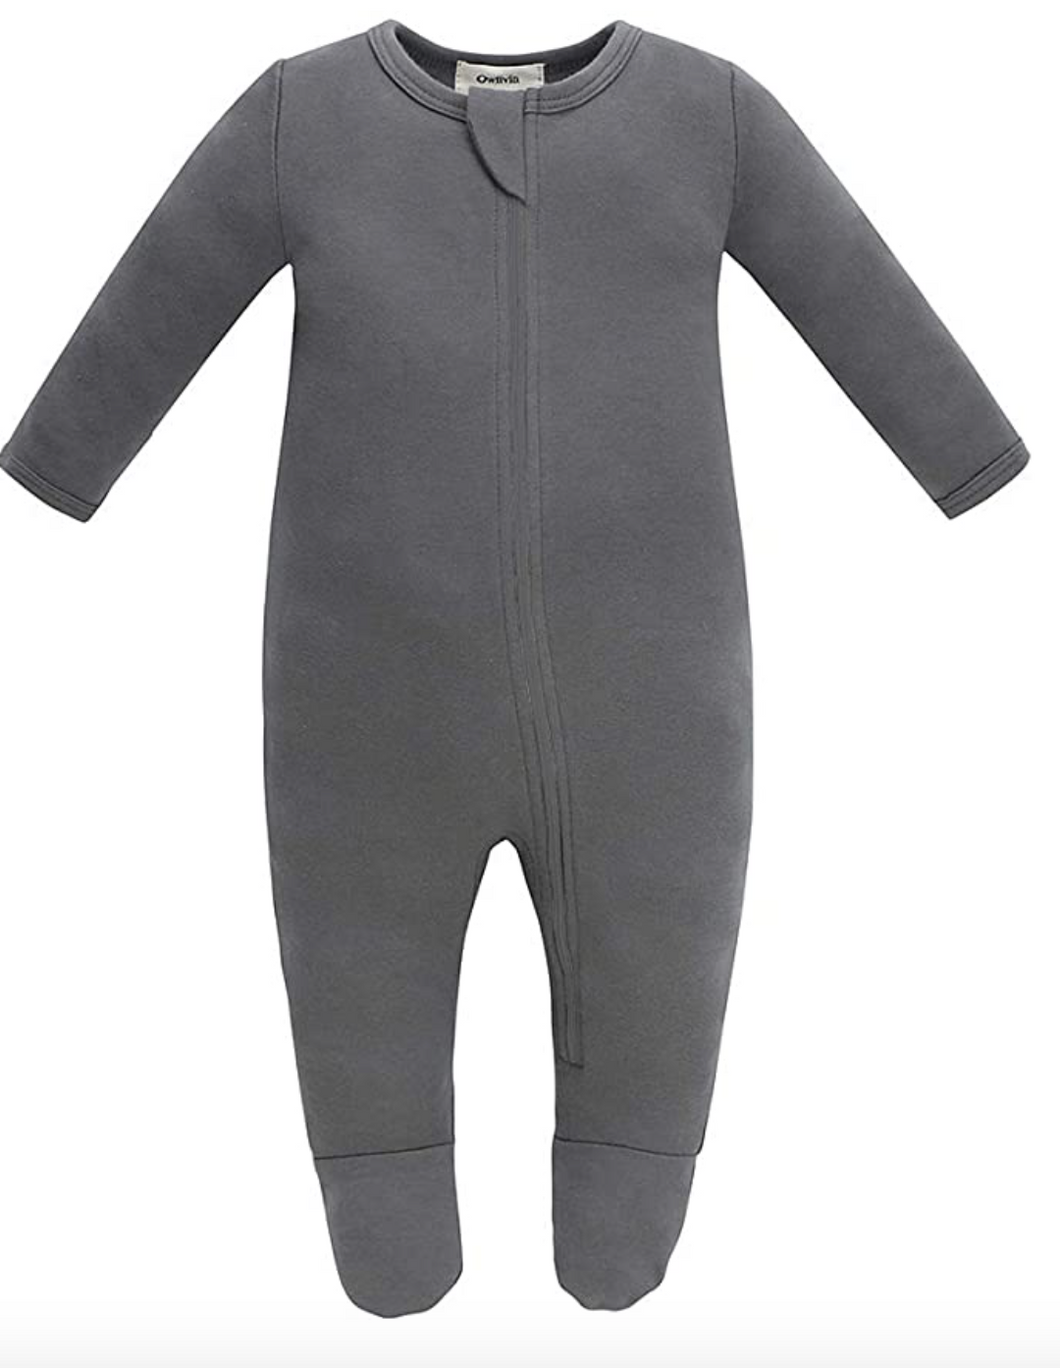 100% Organic Cotton Zip Footed Pajamas - Dark Grey